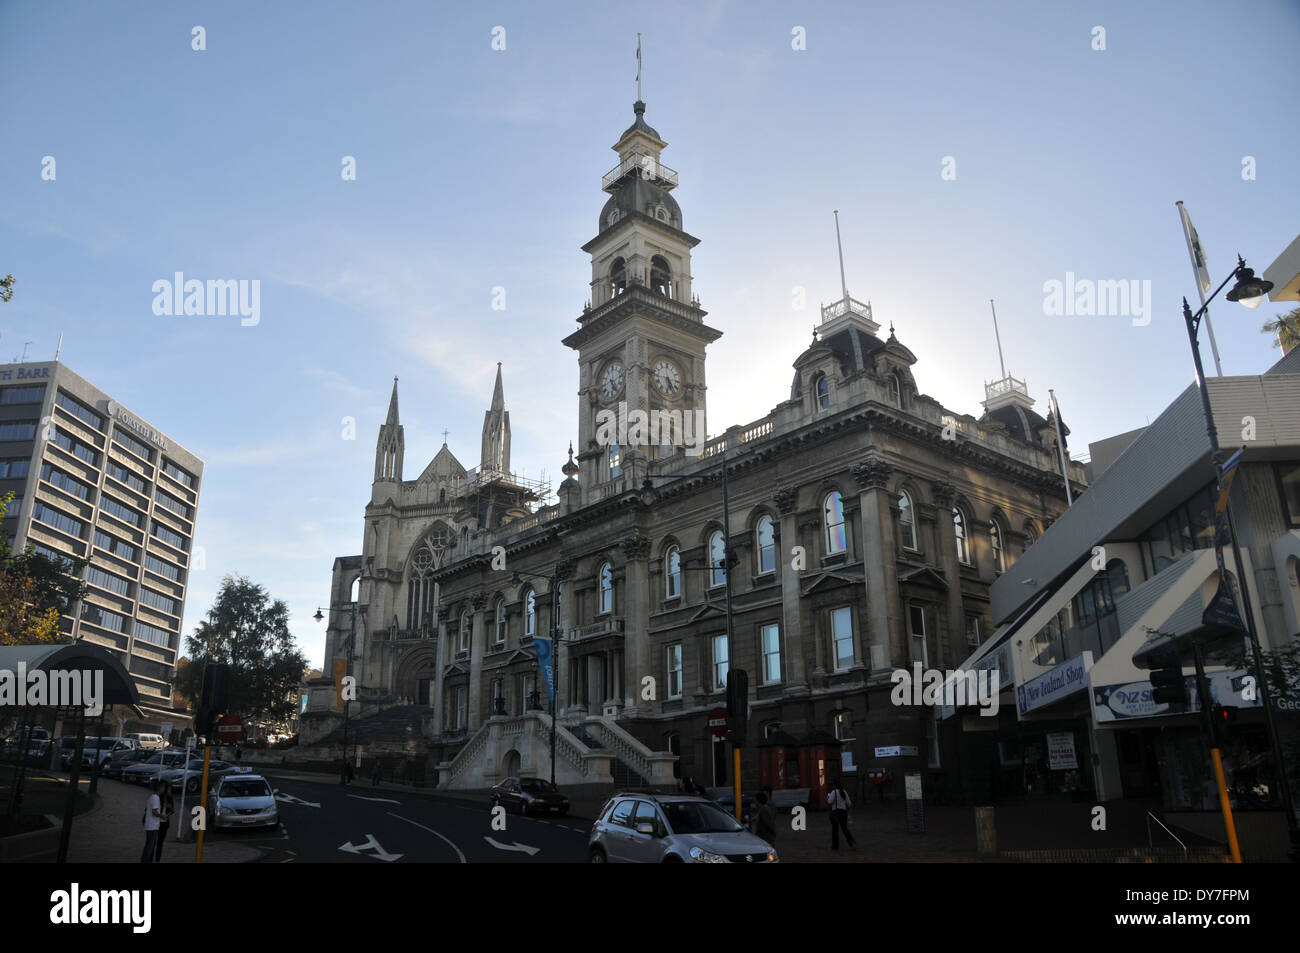 Dunedin New Zealand High Resolution Stock Photography And Images Alamy